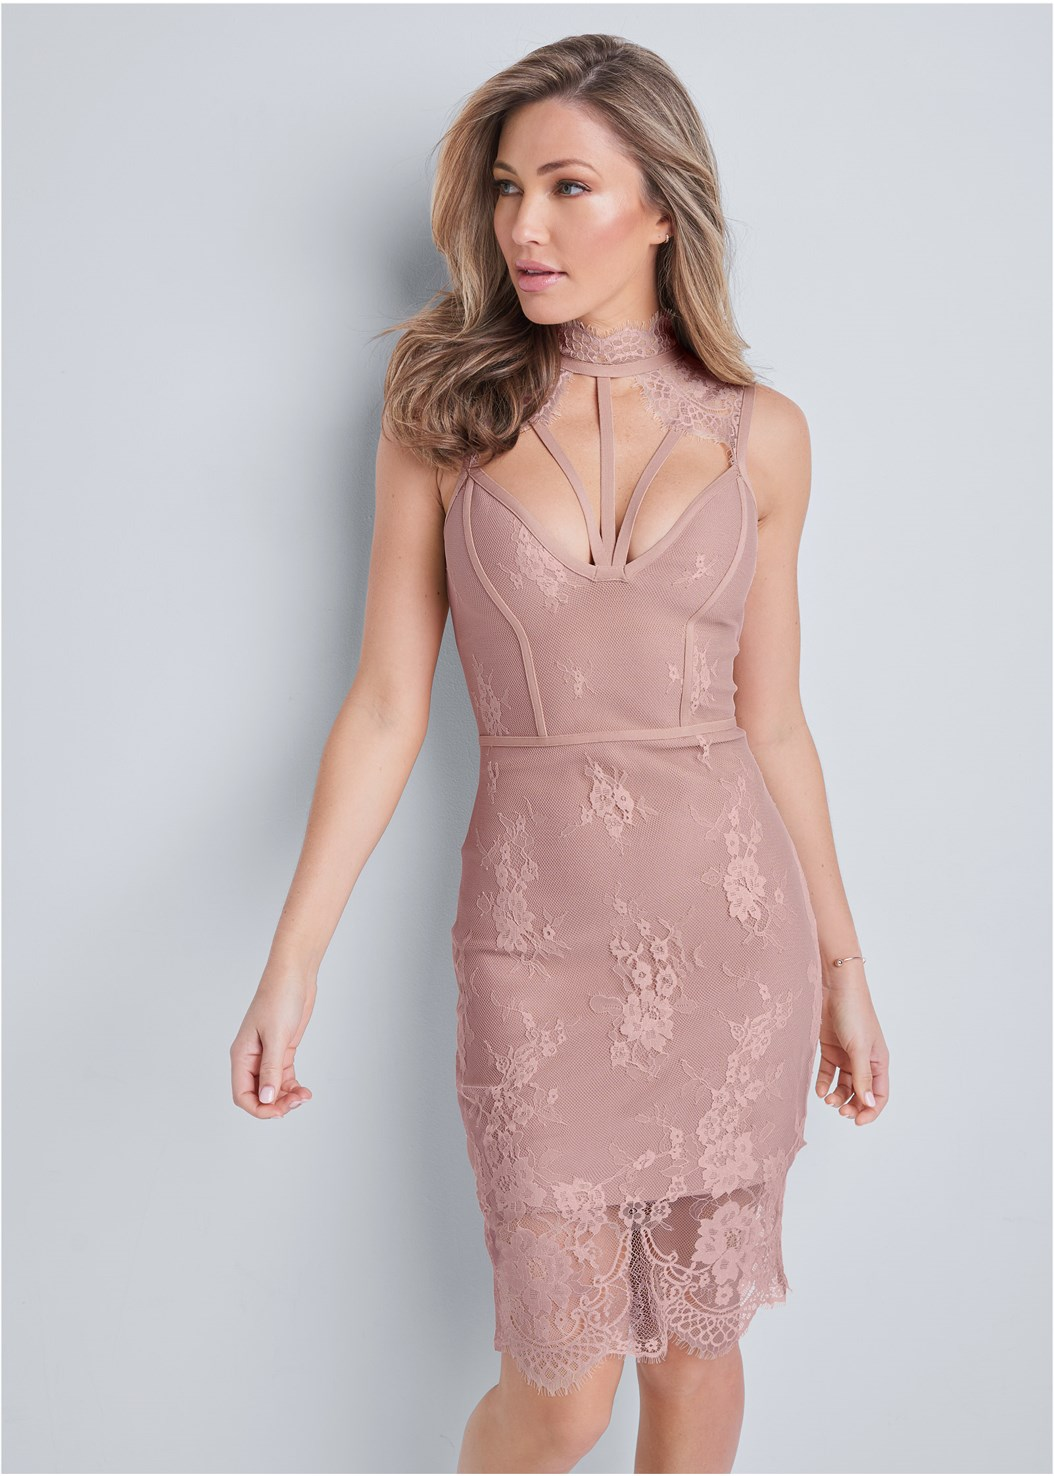 Lace Detail Bandage Dress,Cupid U Plunge Bra,Ankle Strap Heels